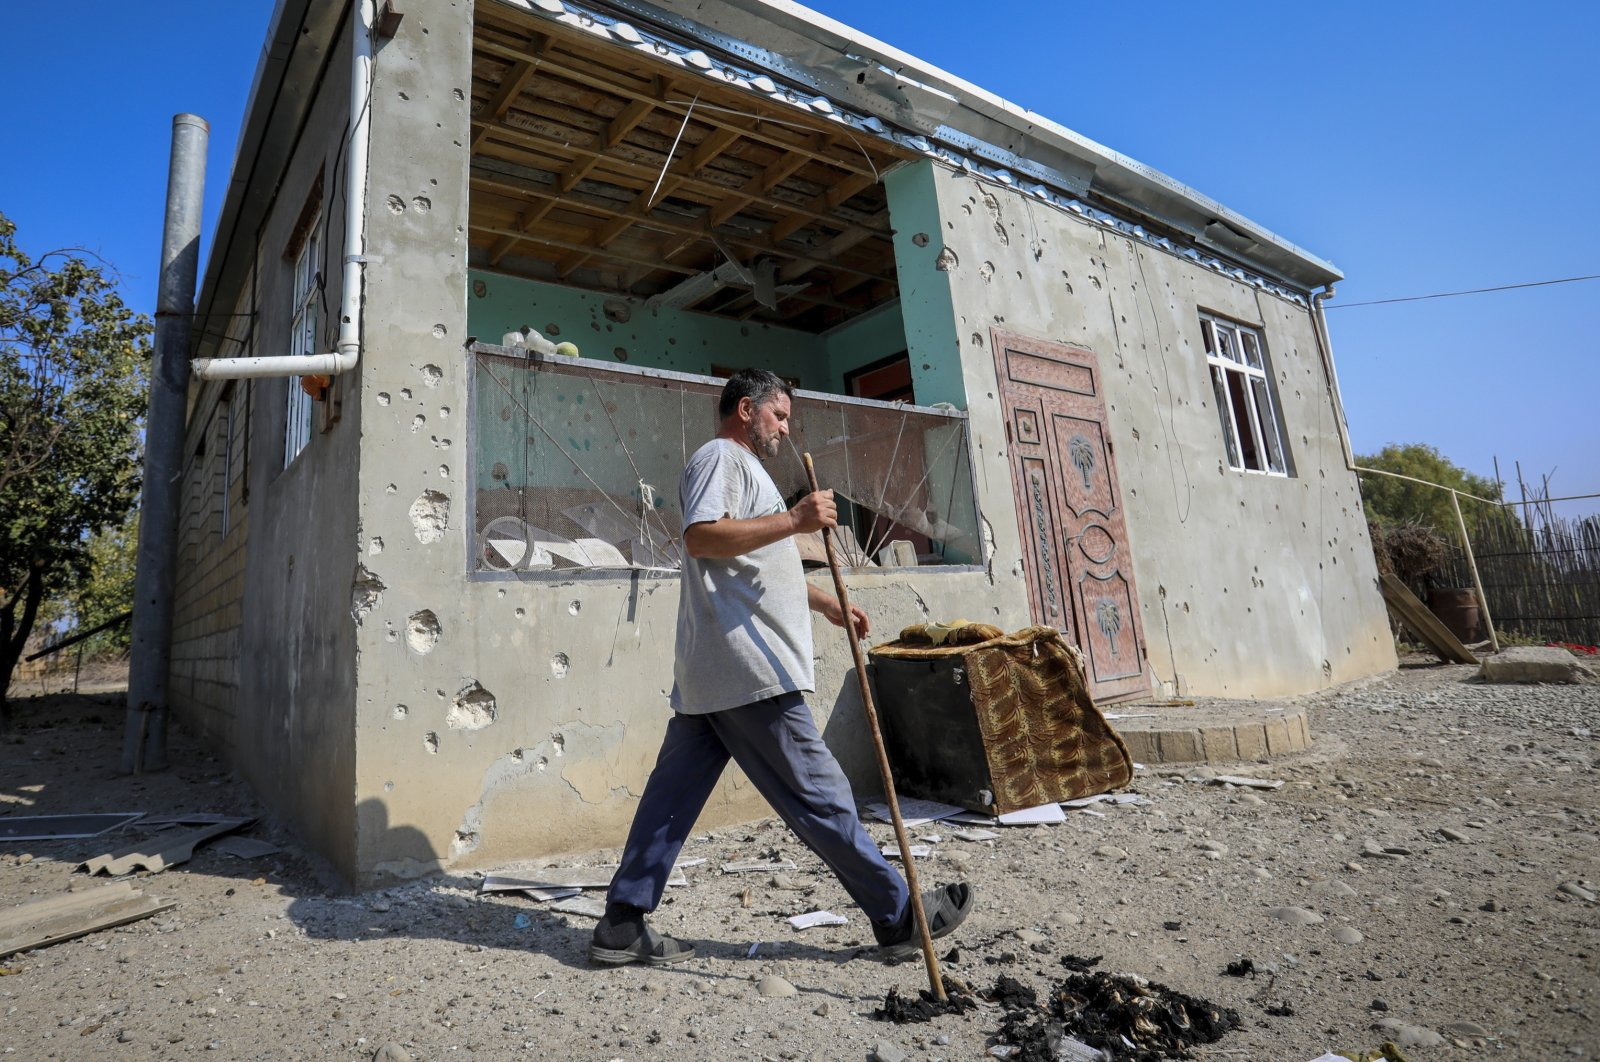 A man walks past a house damaged by shelling during fighting over the region of Nagorno-Karabakh in Aghdam, Azerbaijan, Oct. 19, 2020. (AP Photo)